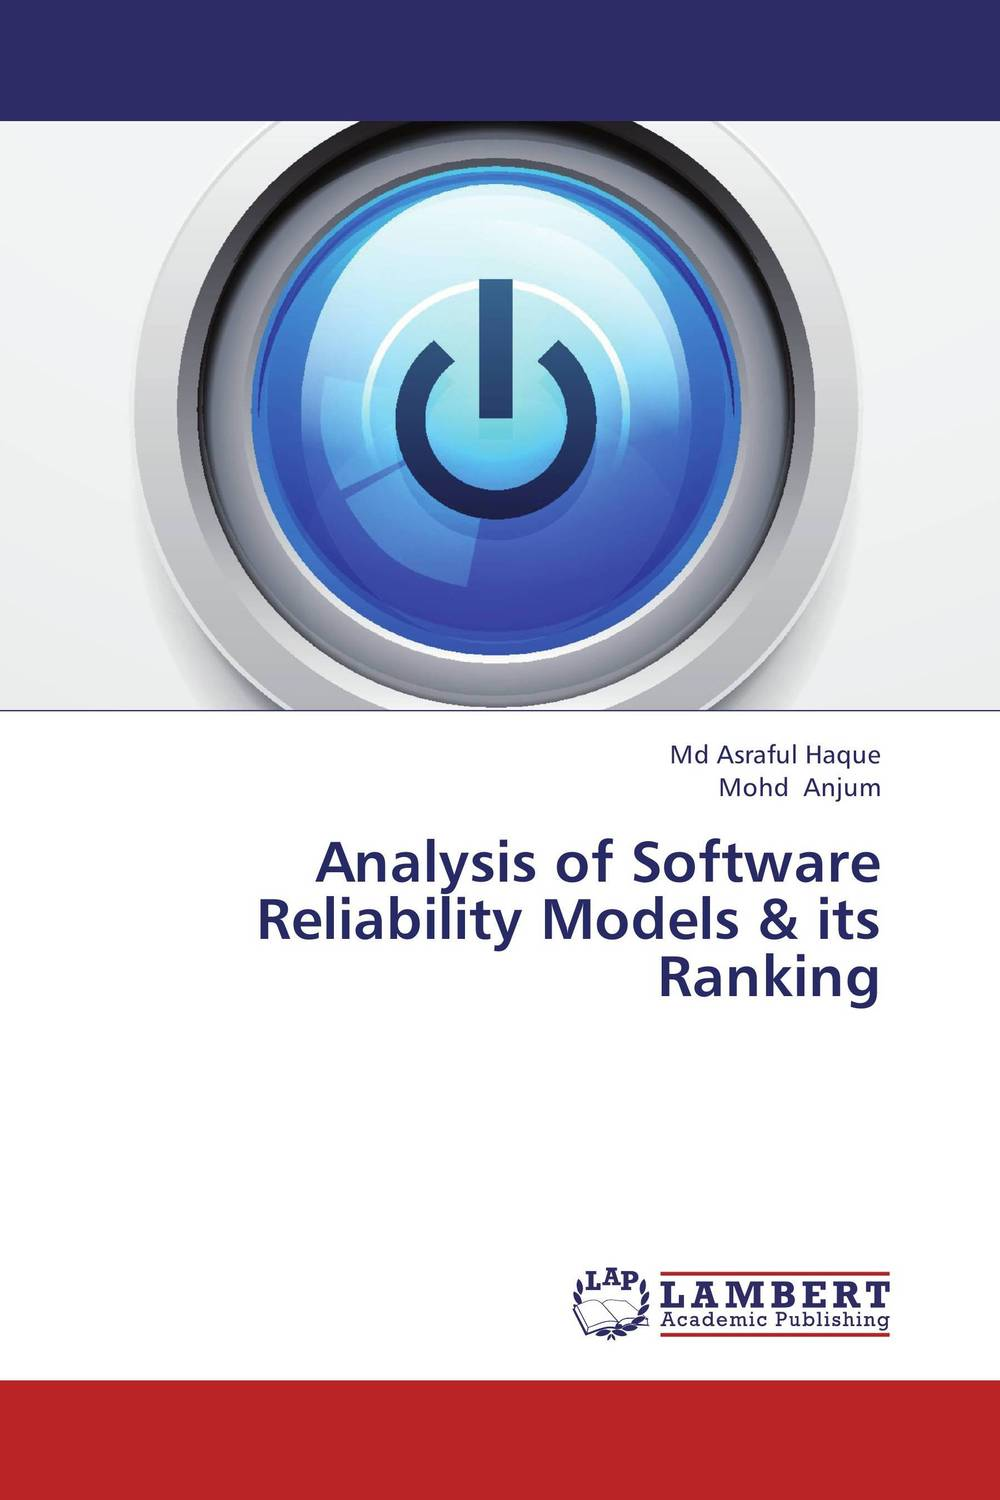 Analysis of Software Reliability Models & its Ranking kapil sharma and r k garg software reliability modeling and selection